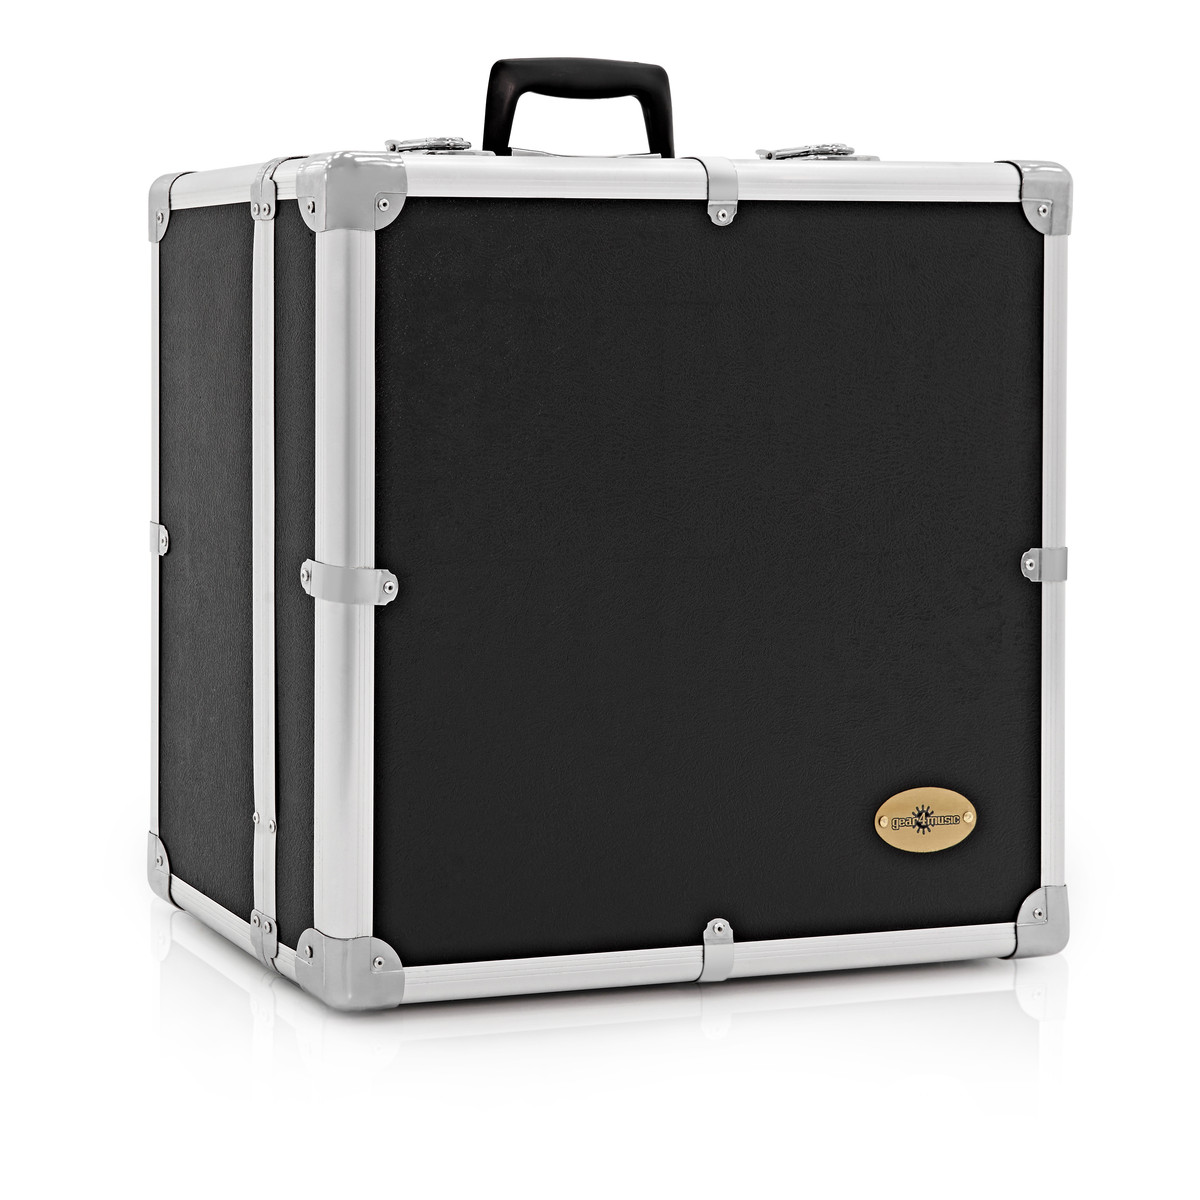 Image of 37 Key/96 Bass Accordion ABS Case by Gear4music